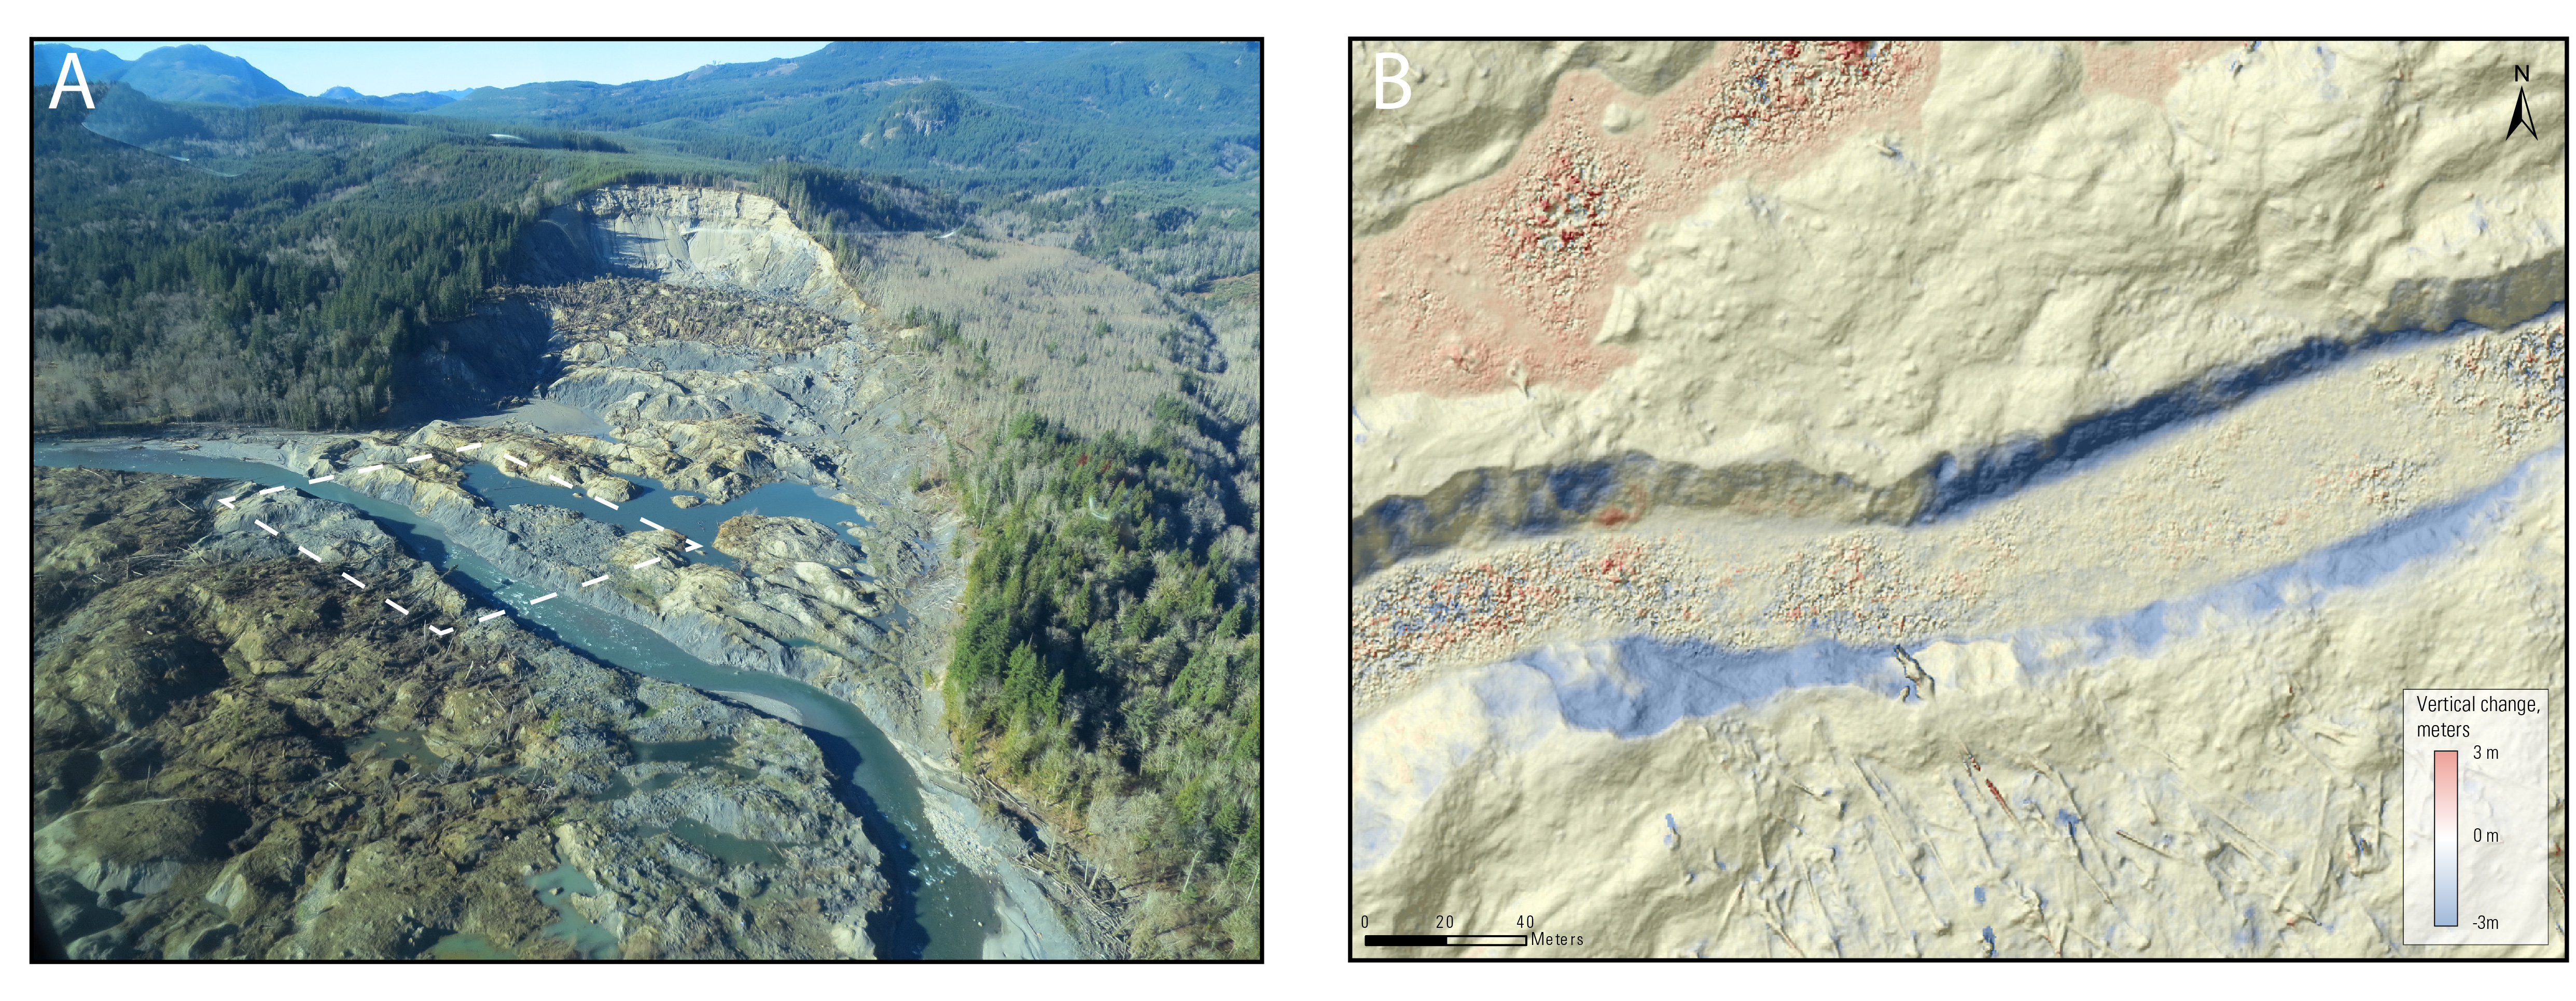 A) Photo of the Oso landslide, taken January 29, 2015. Dashed white rectangle indicates extents shown  in panel B. Photo A on left faces northeast; see north arrow in panel B.